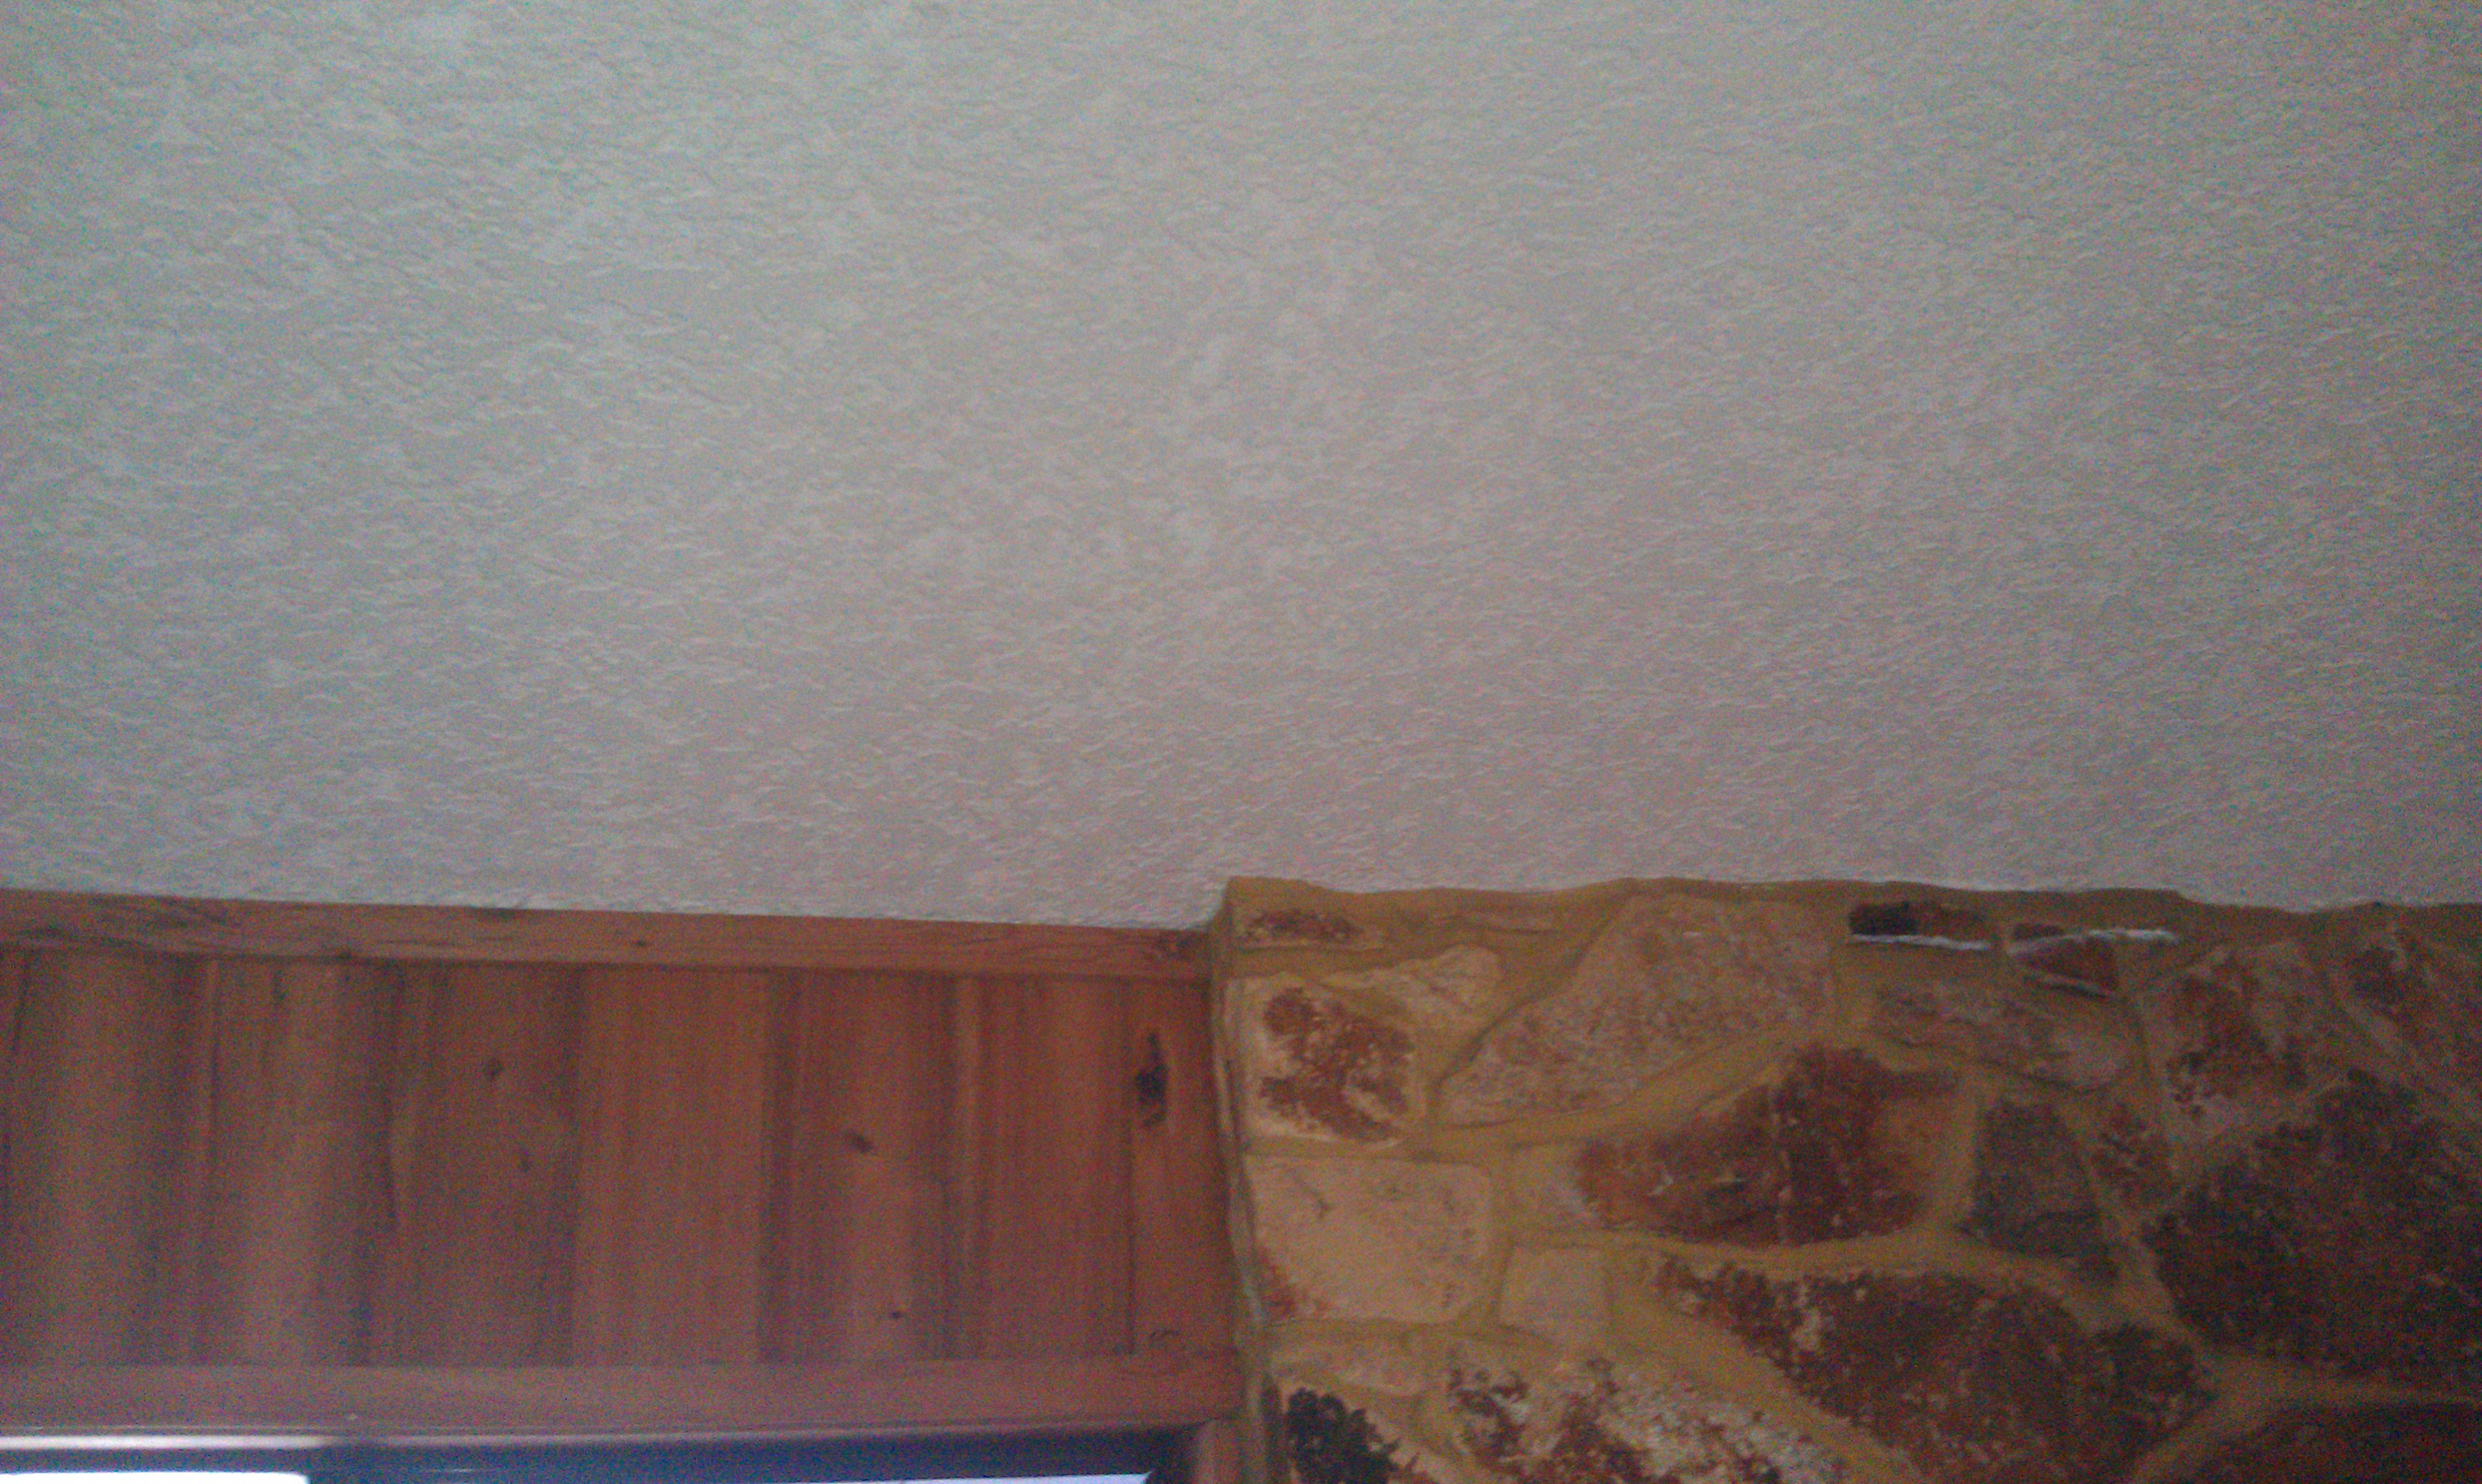 Knock Down Ceiling Texture Wall Textures For Drywall From Jacksonville Carpenter